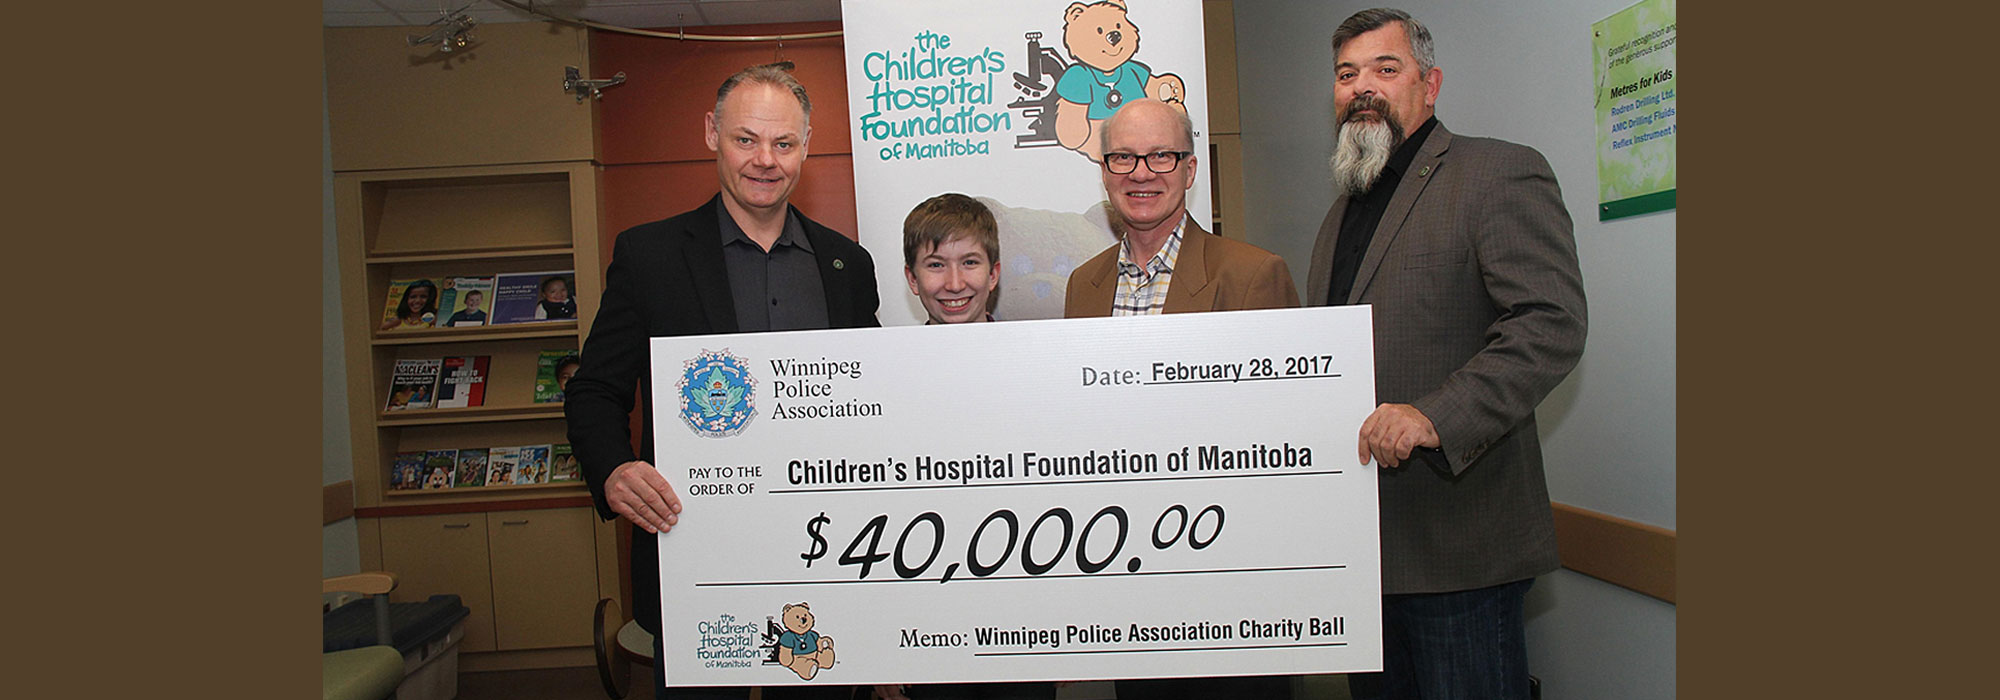 WINNIPEG POLICE ASSOCIATION DONATES $40,000 TO CHILDREN'S HOSPITAL FOUNDATION OF MANITOBA